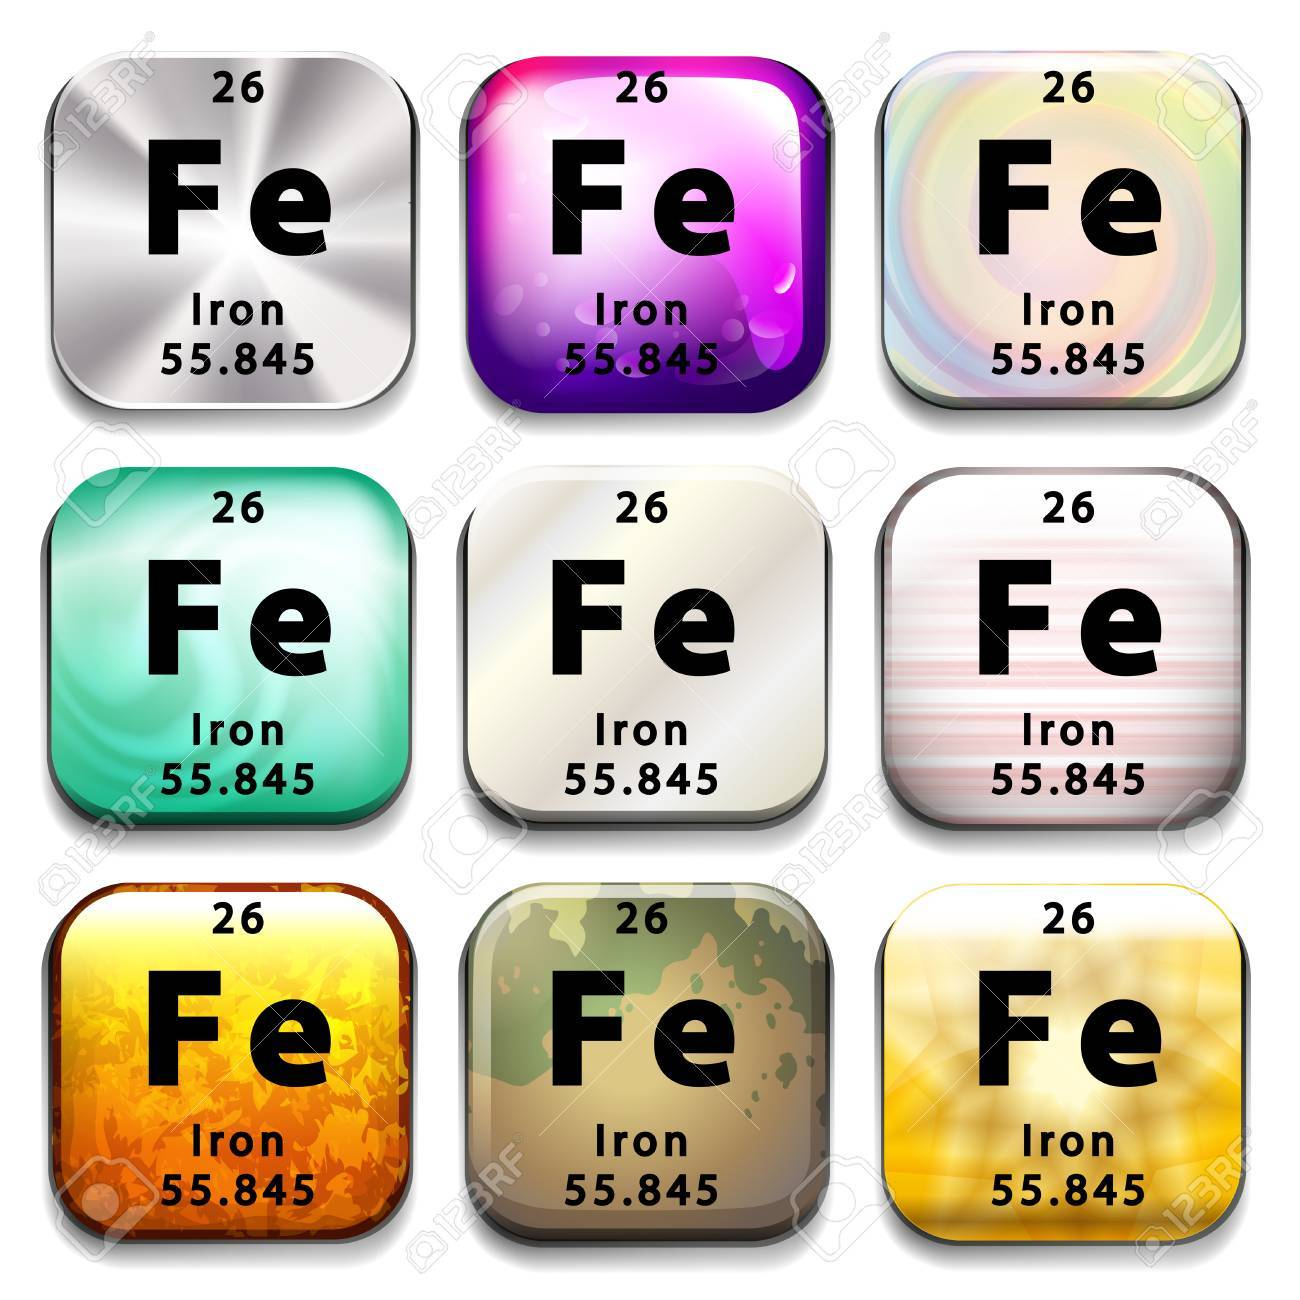 Periodic table for iron image collections periodic table images a periodic table button showing iron on a white background royalty a periodic table button showing gamestrikefo Images